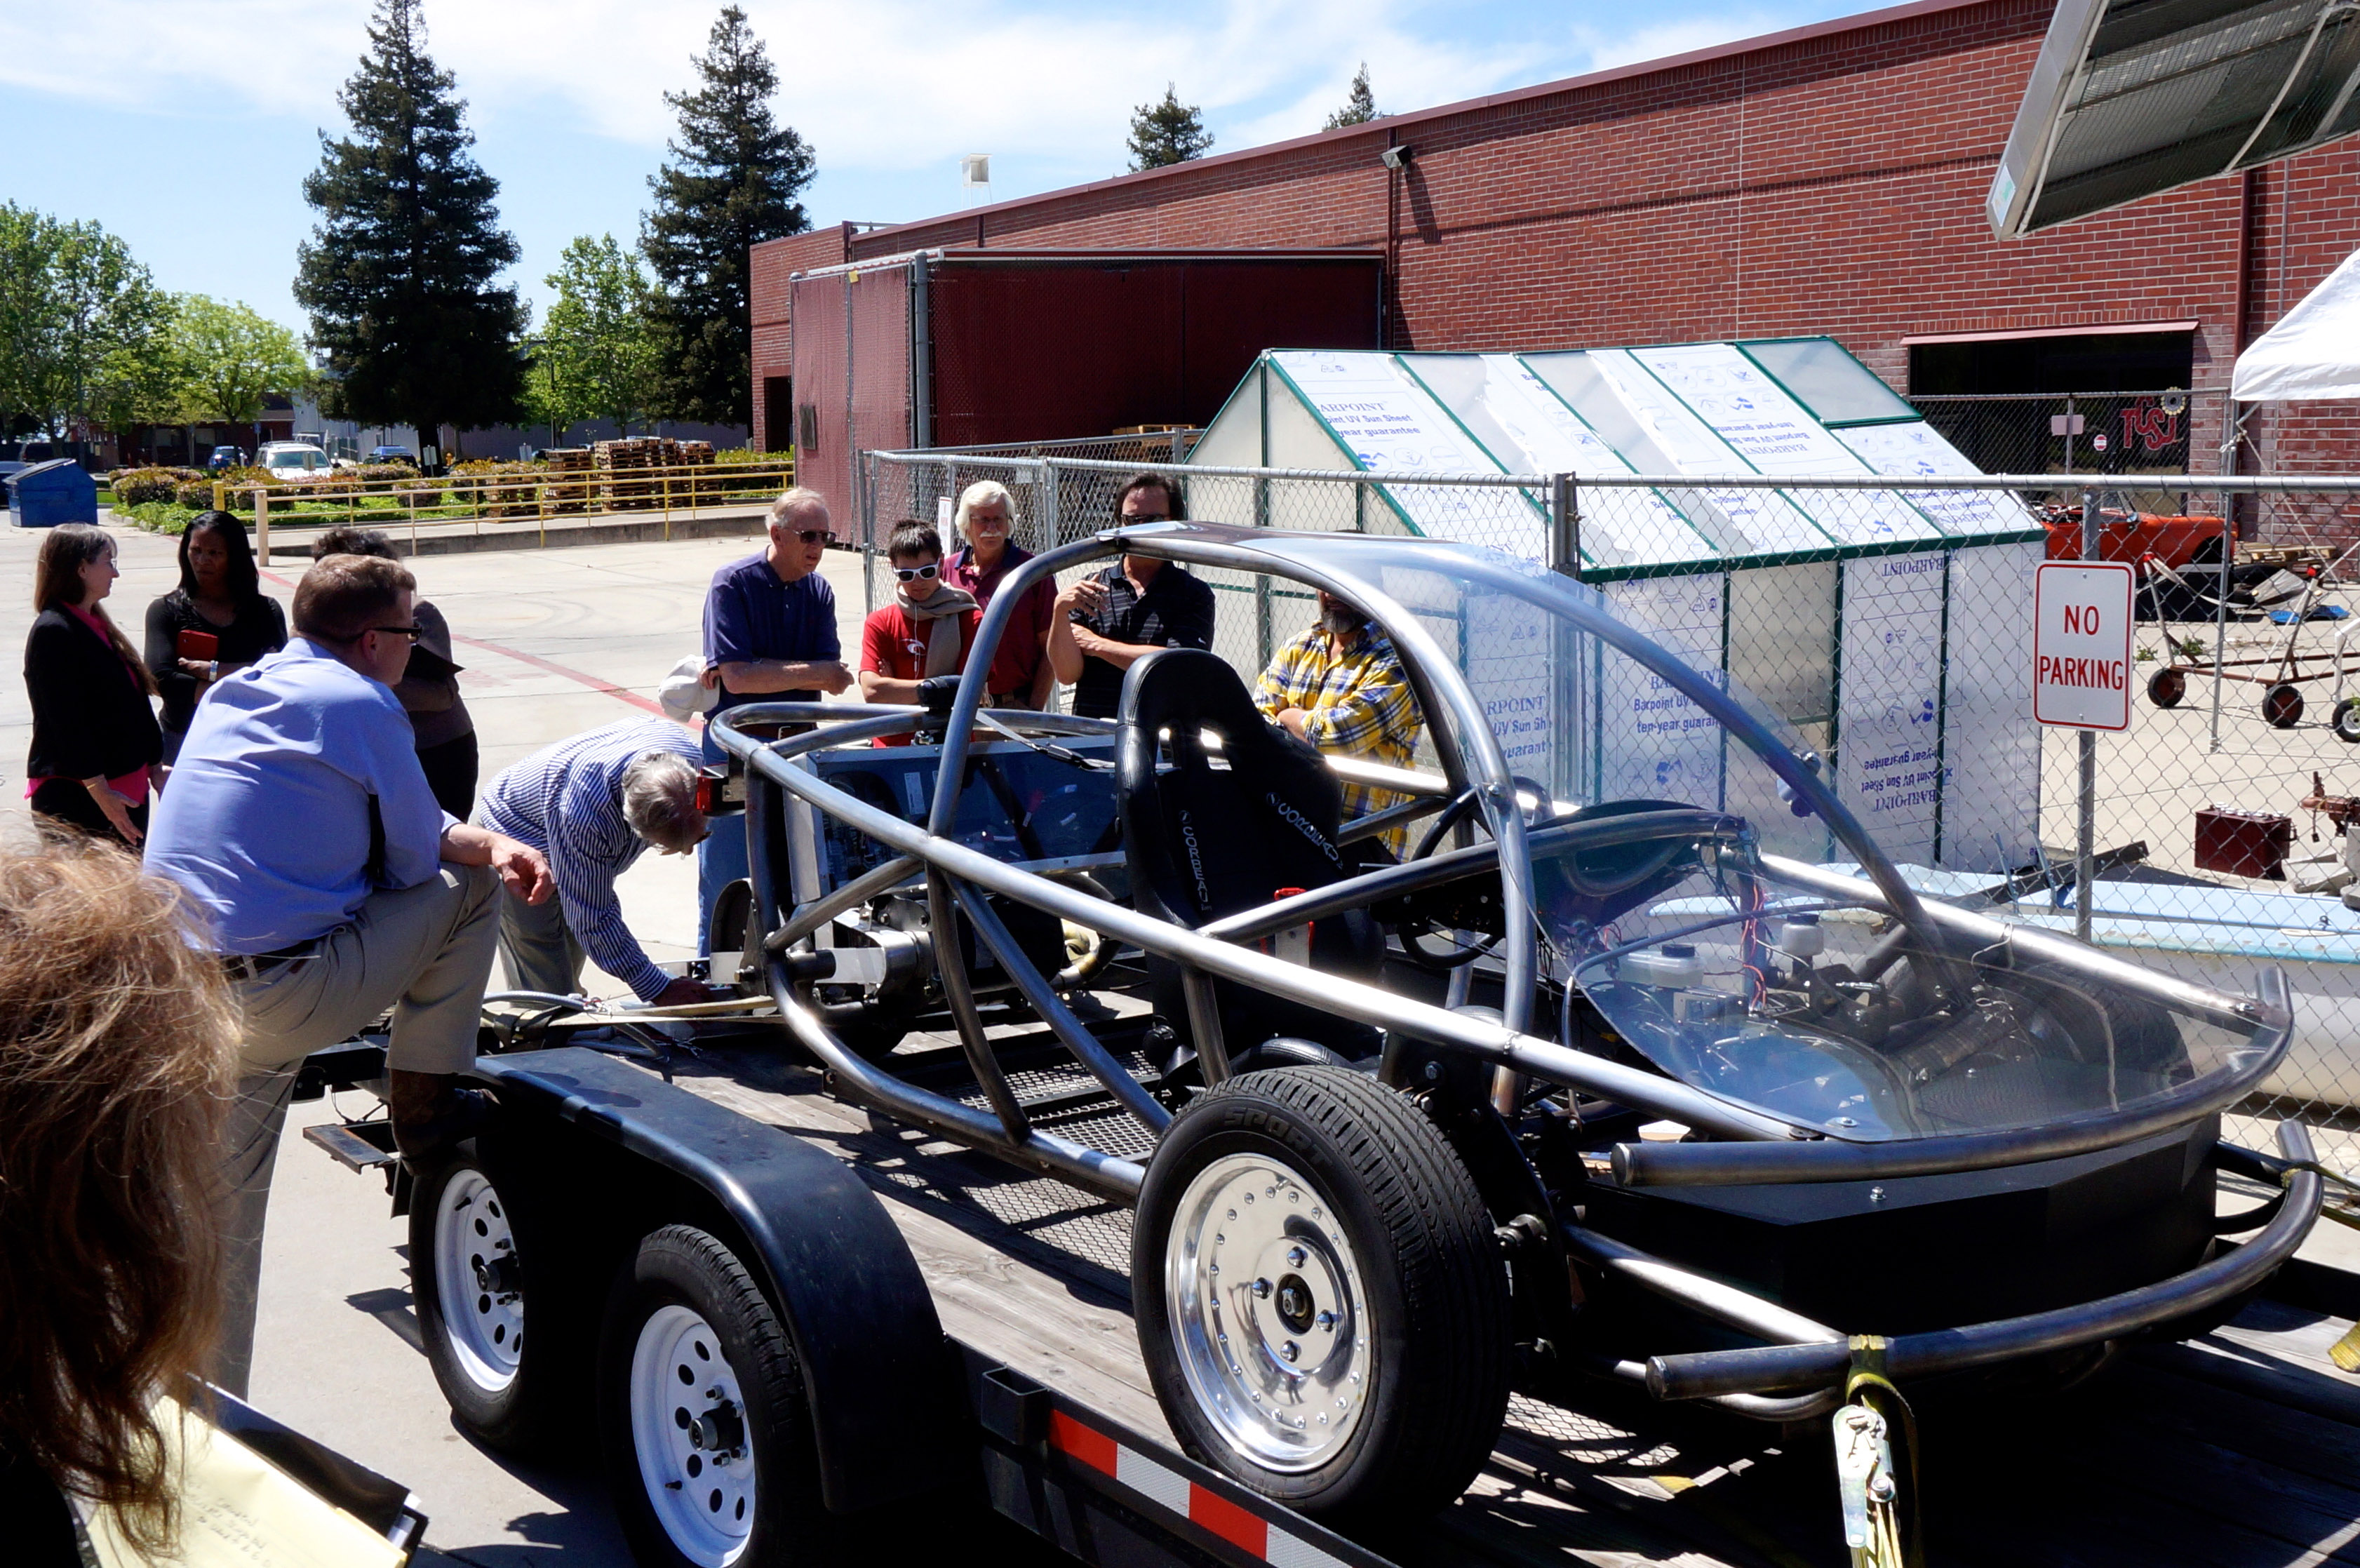 Nissan Campbell River >> PODCAST 125: Watt's Happening at Venture Academy and American River College | Electric Auto Shop